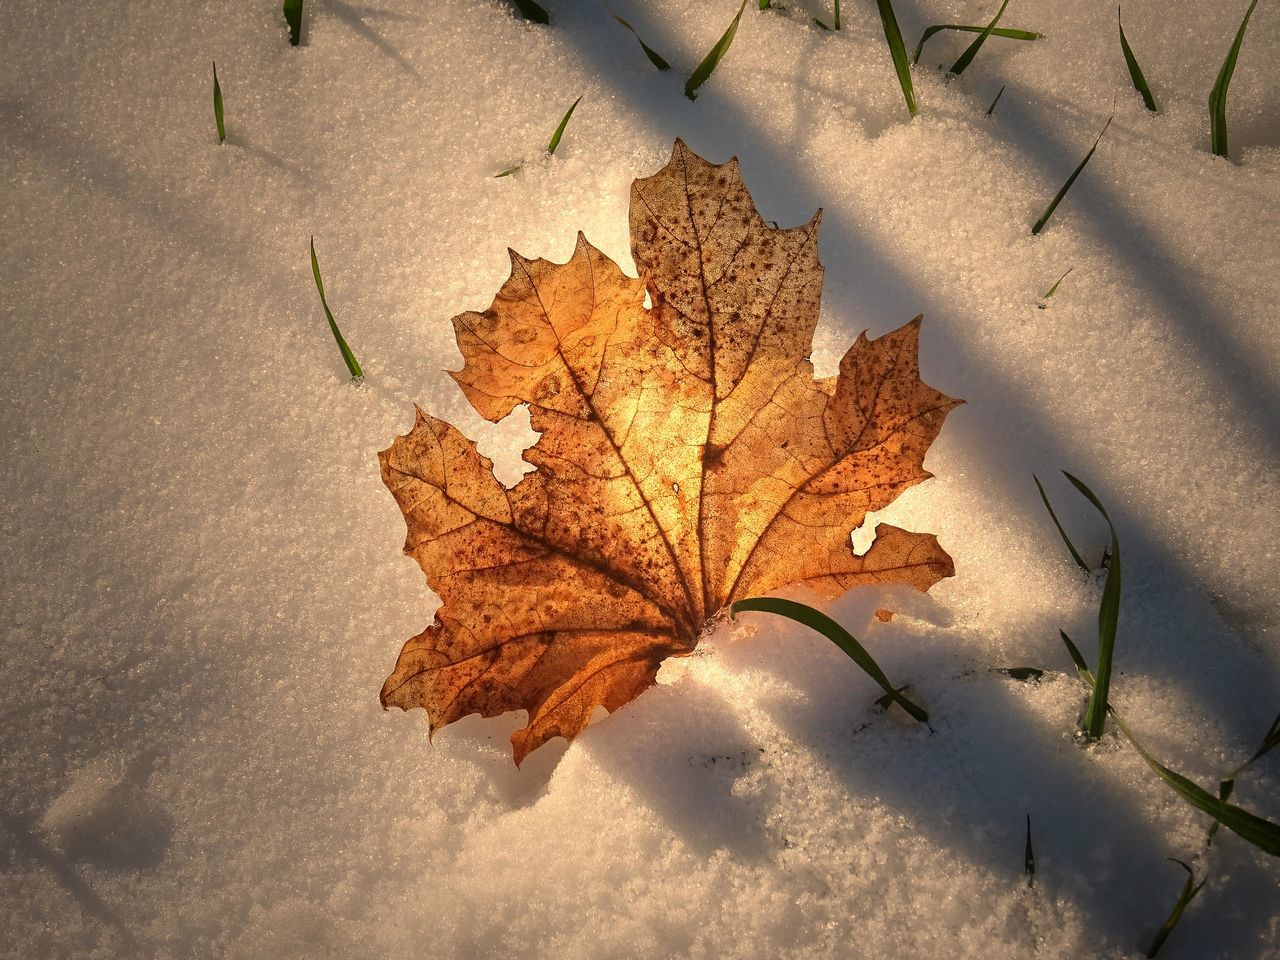 autumn, leaf, change, dry, nature, maple, high angle view, maple leaf, day, outdoors, no people, close-up, beauty in nature, fragility